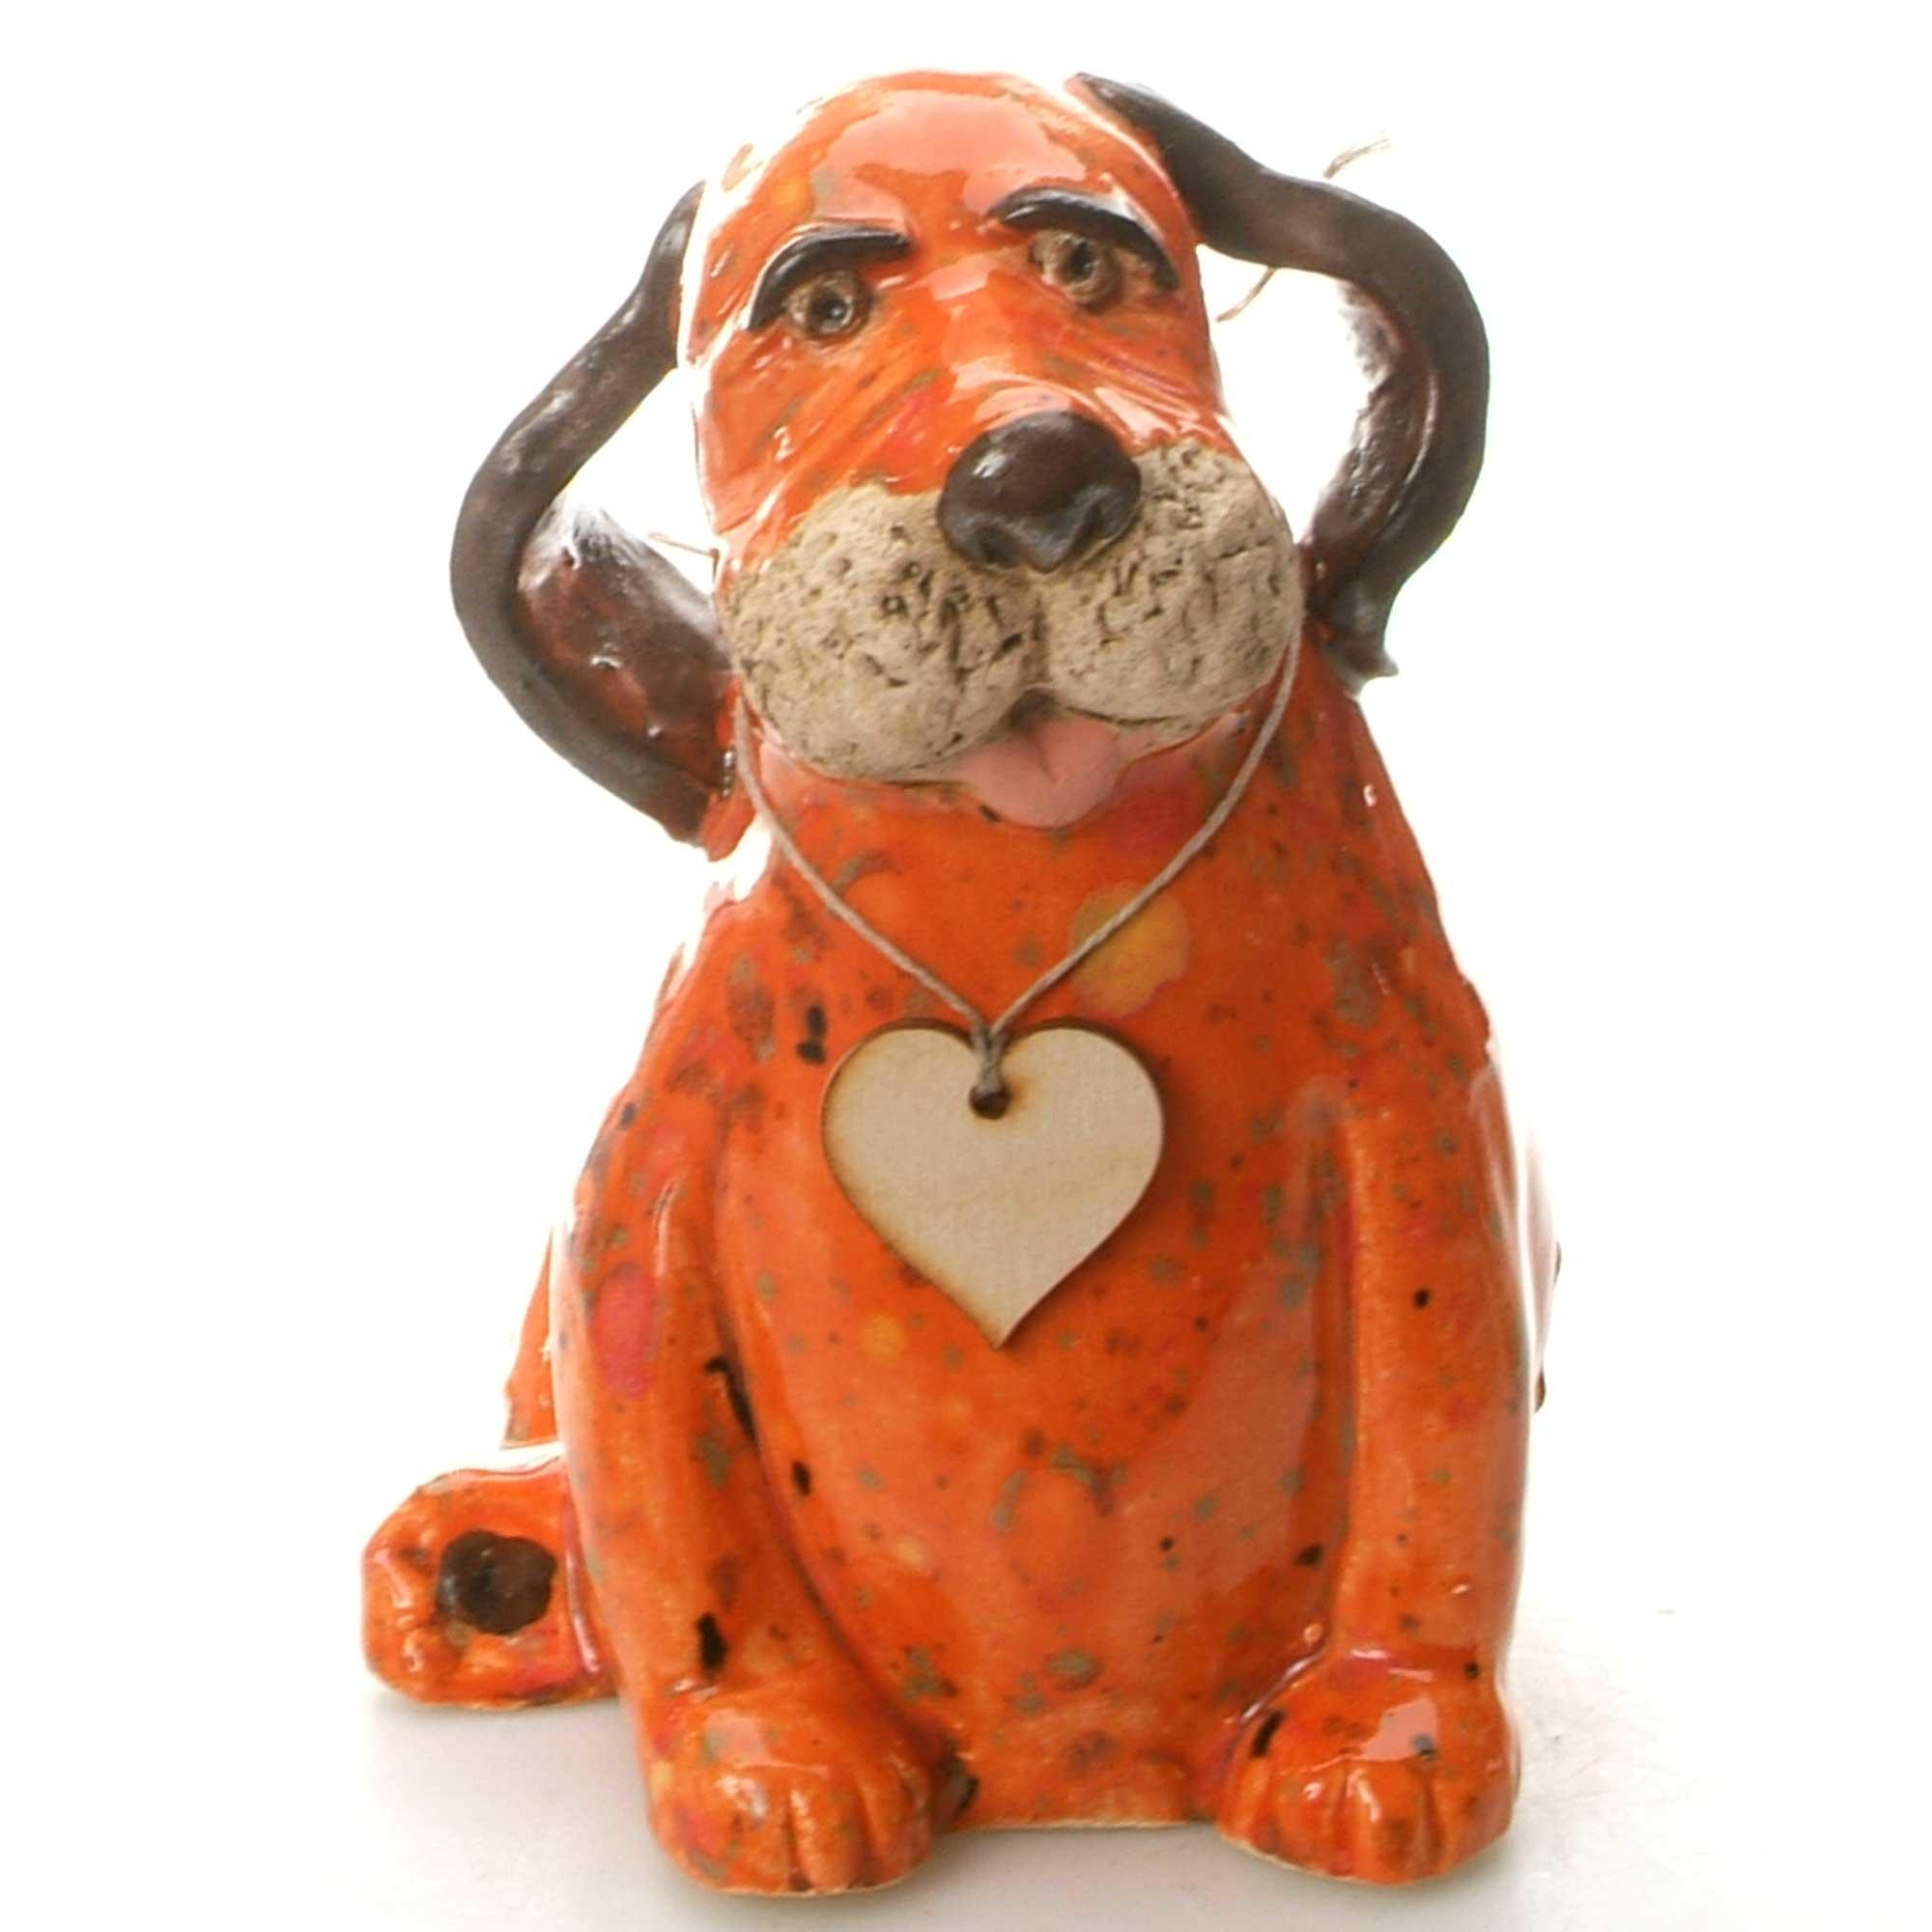 Ceramic Labrador Puppy With Wooden Heart | Ginger